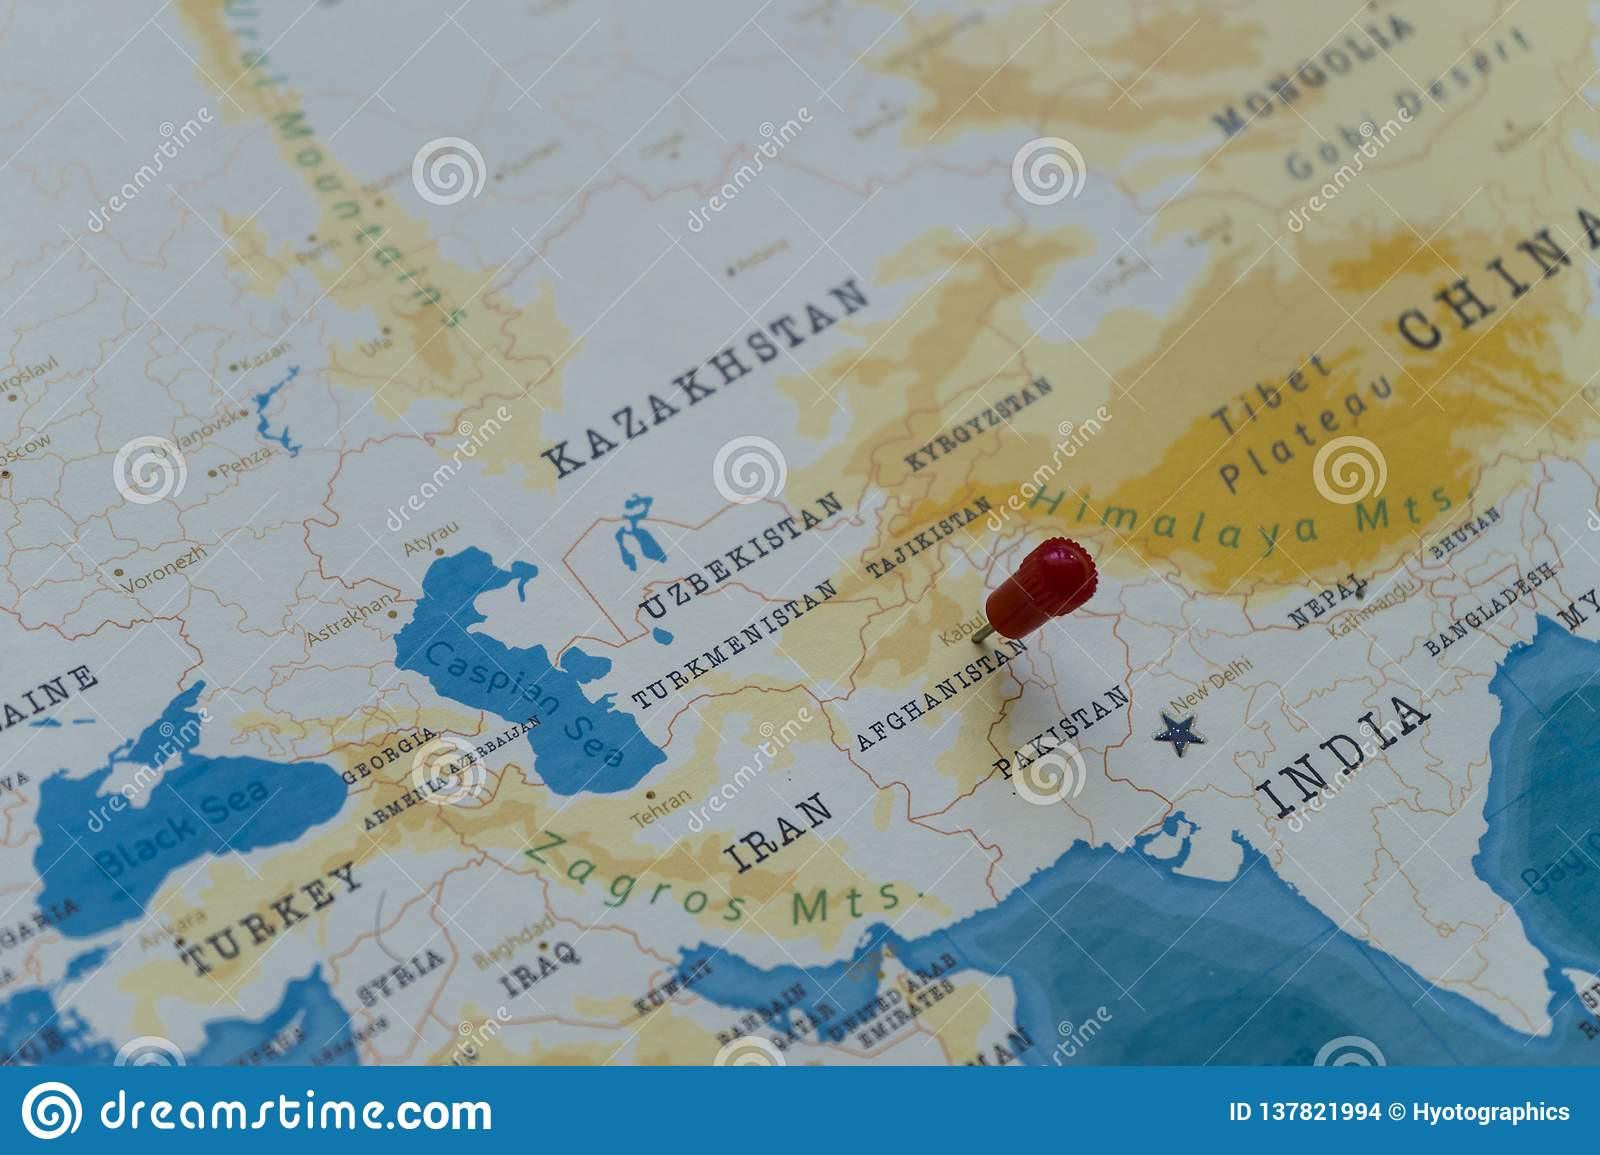 Afghanistan Map Of World.A Pin On Kabul Afghanistan In The World Map Stock Photo Image Of